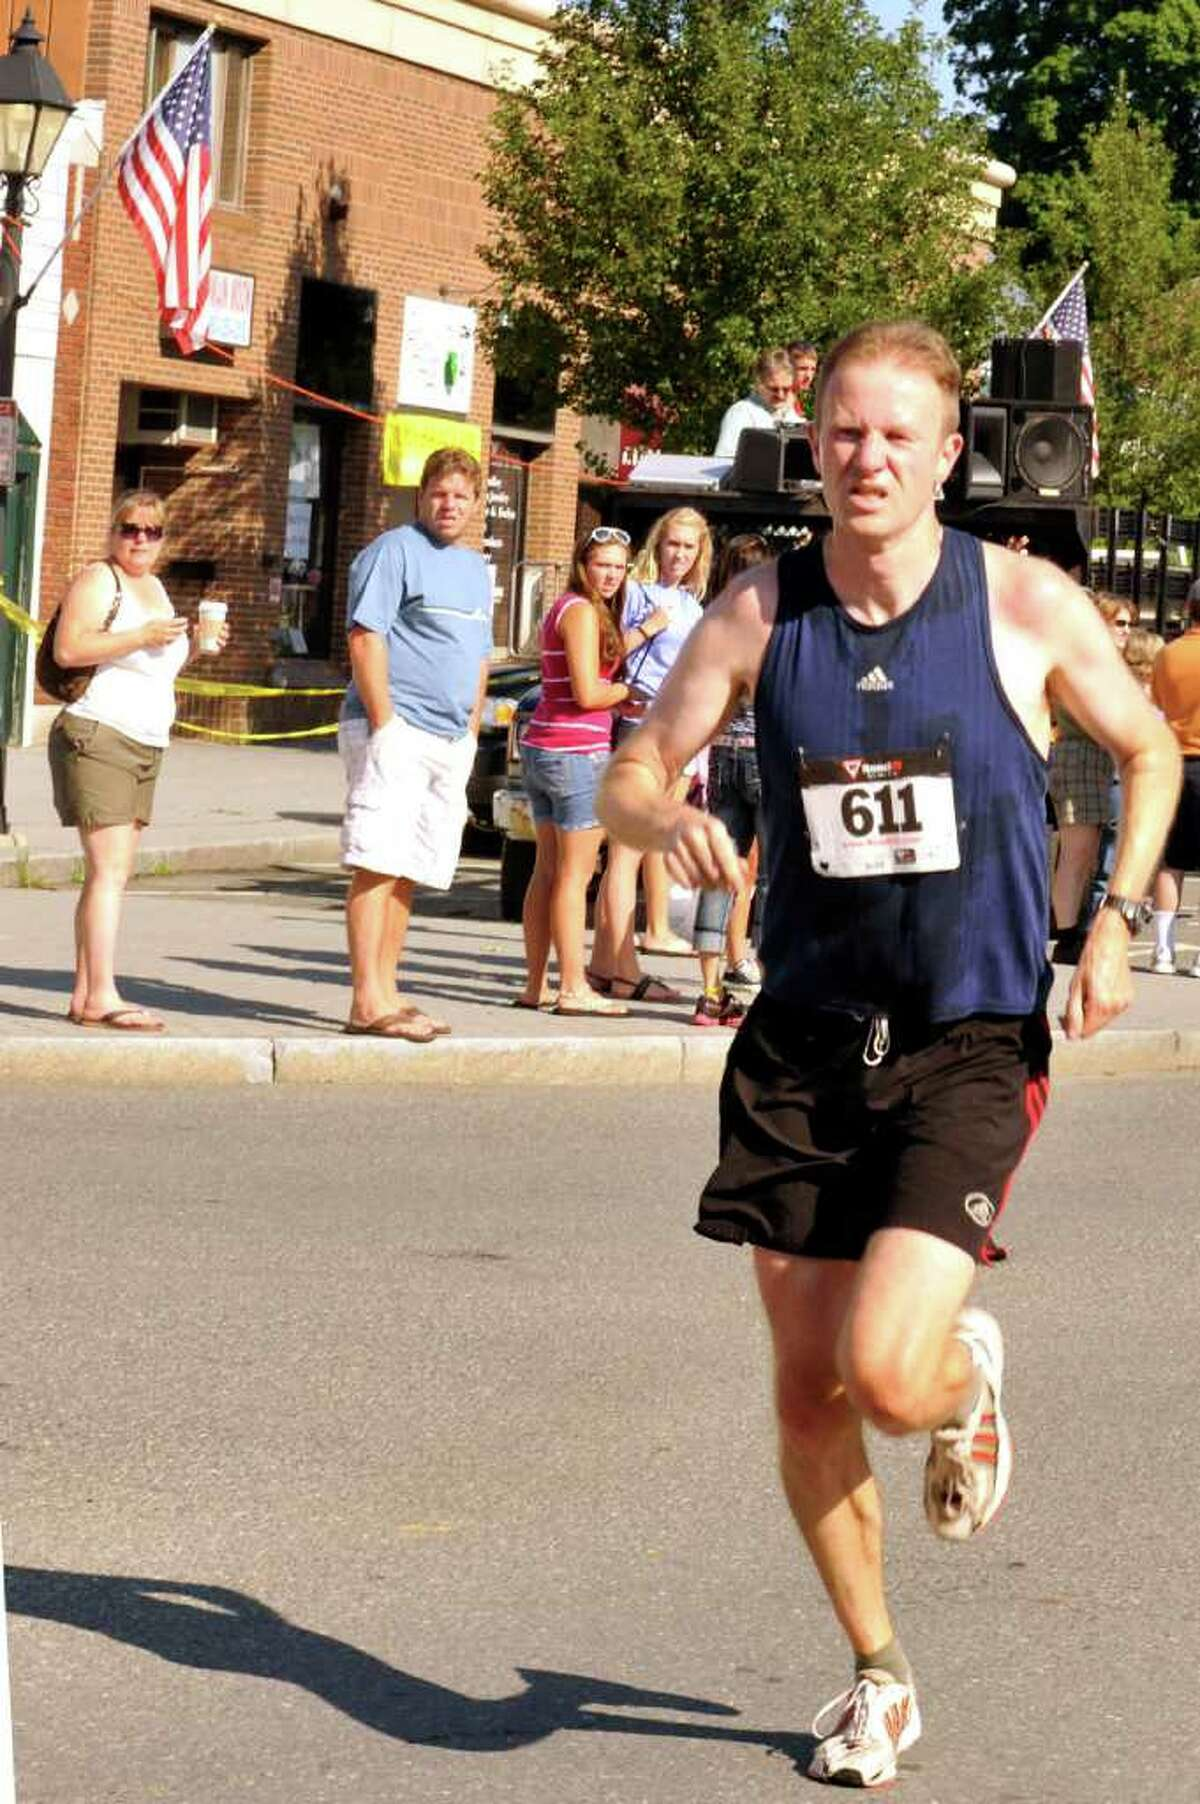 Joe LeMay of Danbury wins The New Milford 5K road race during Village Fair Days in New Milford, Saturday, July 30, 2011.